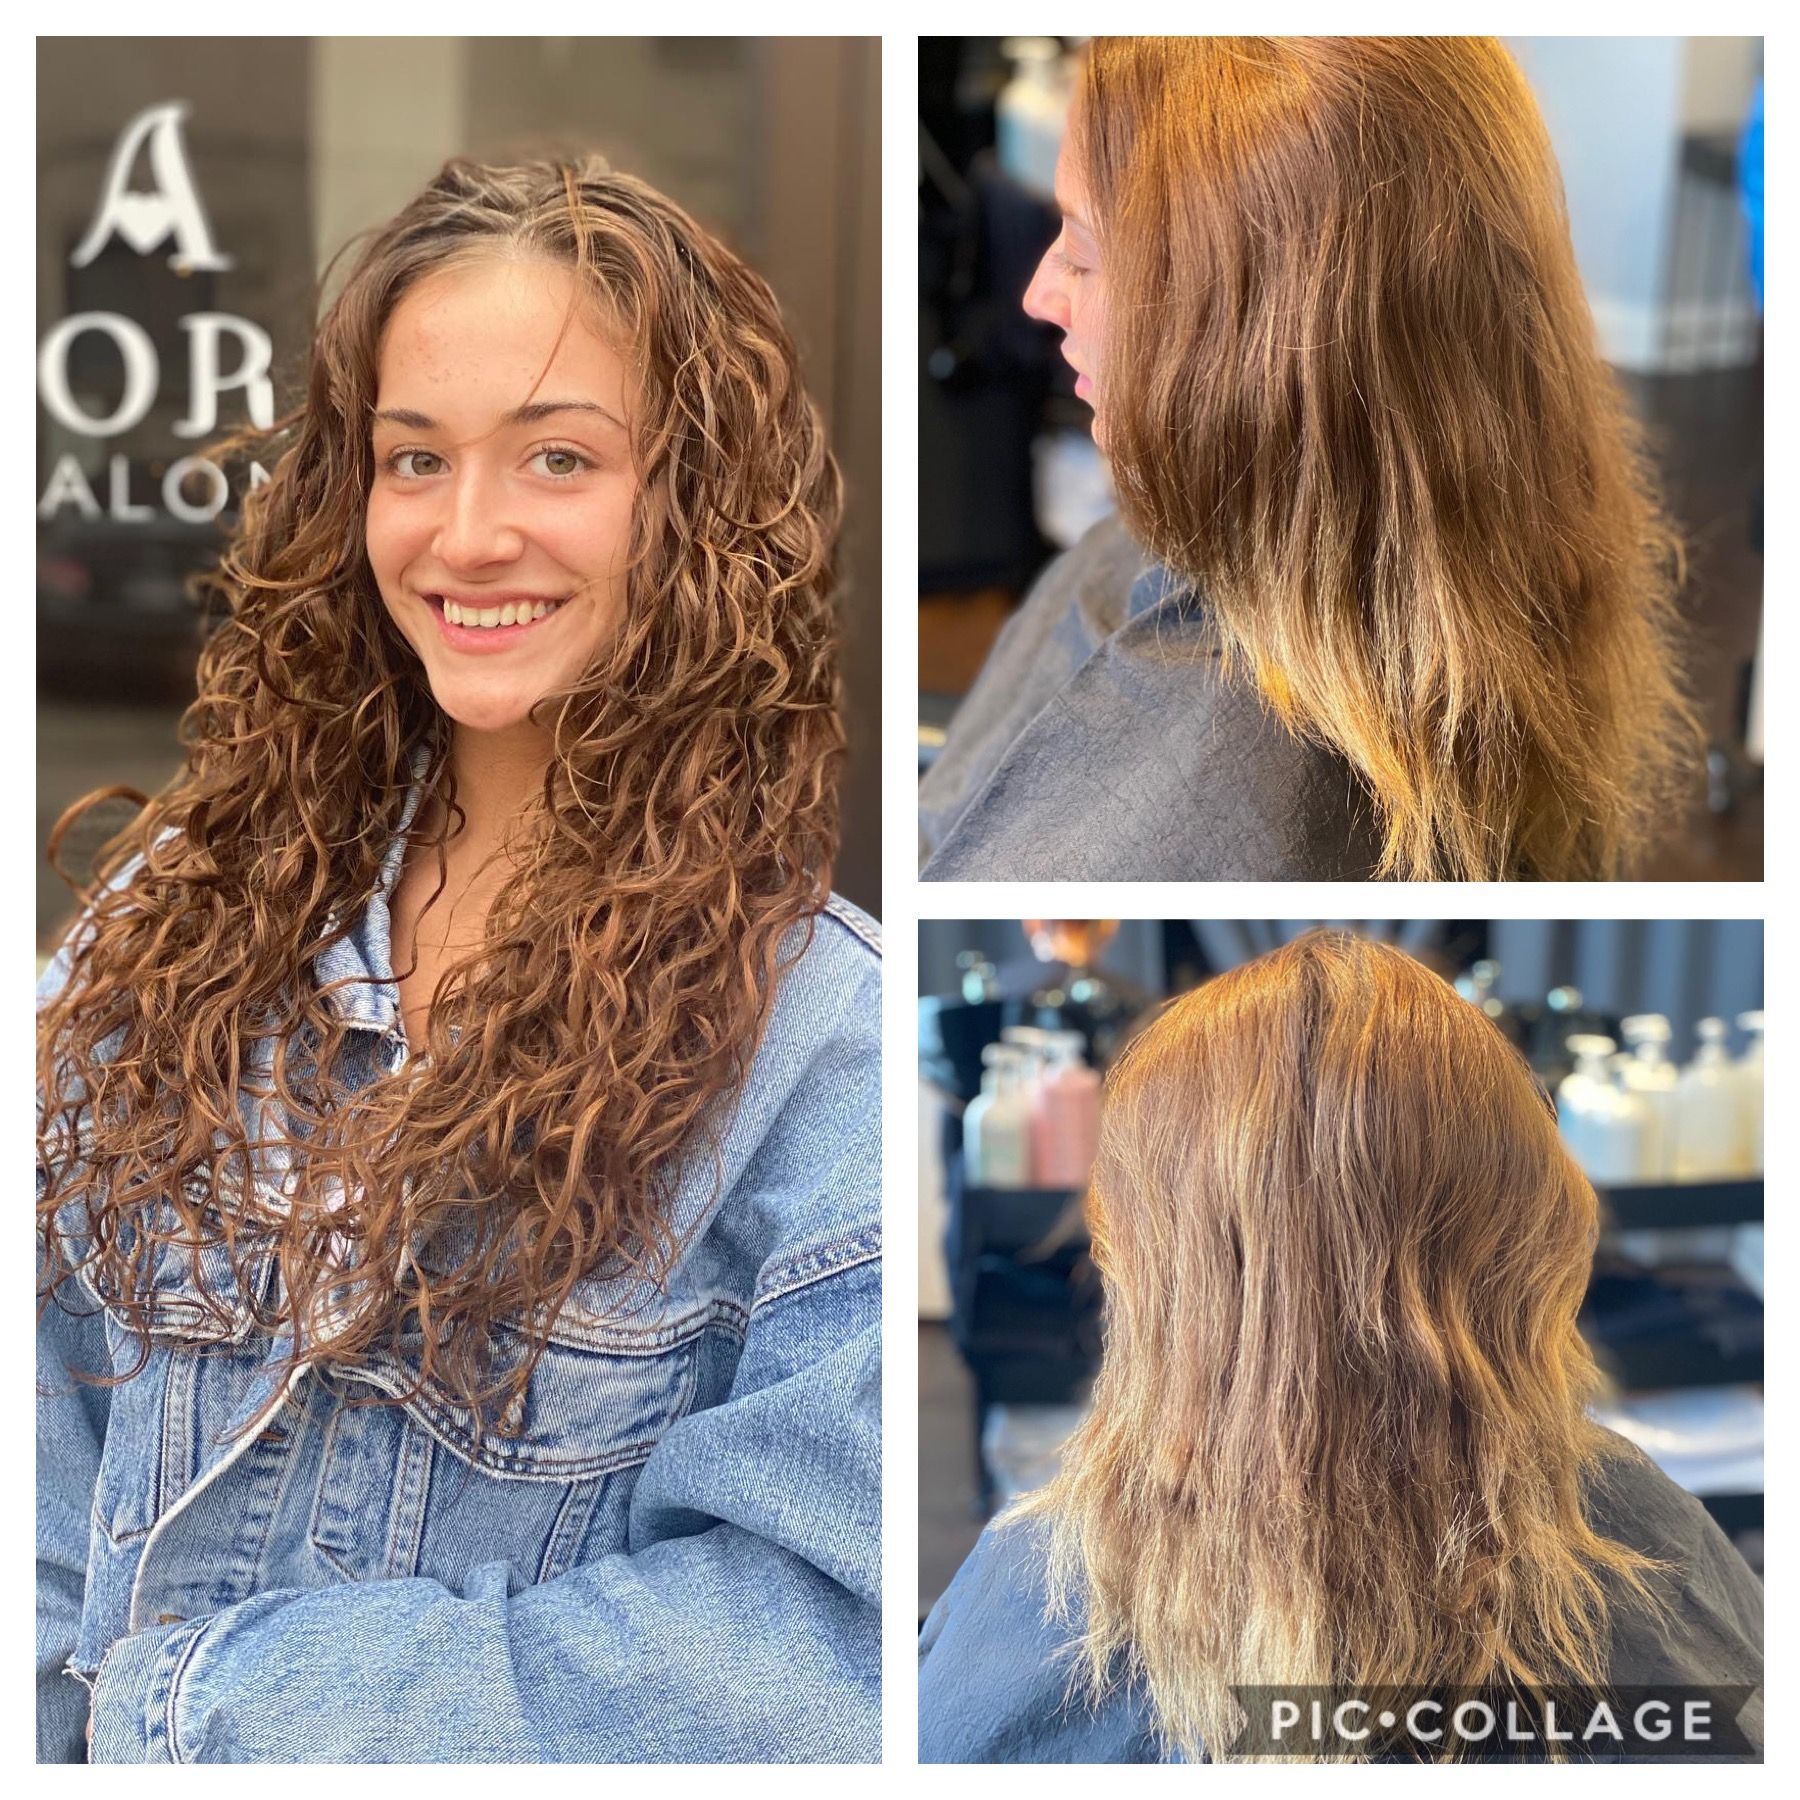 Adored Signature Hand Tied Hair Extensions In 2020 Curly Hair Styles Hair Extensions Curly Hair Salon